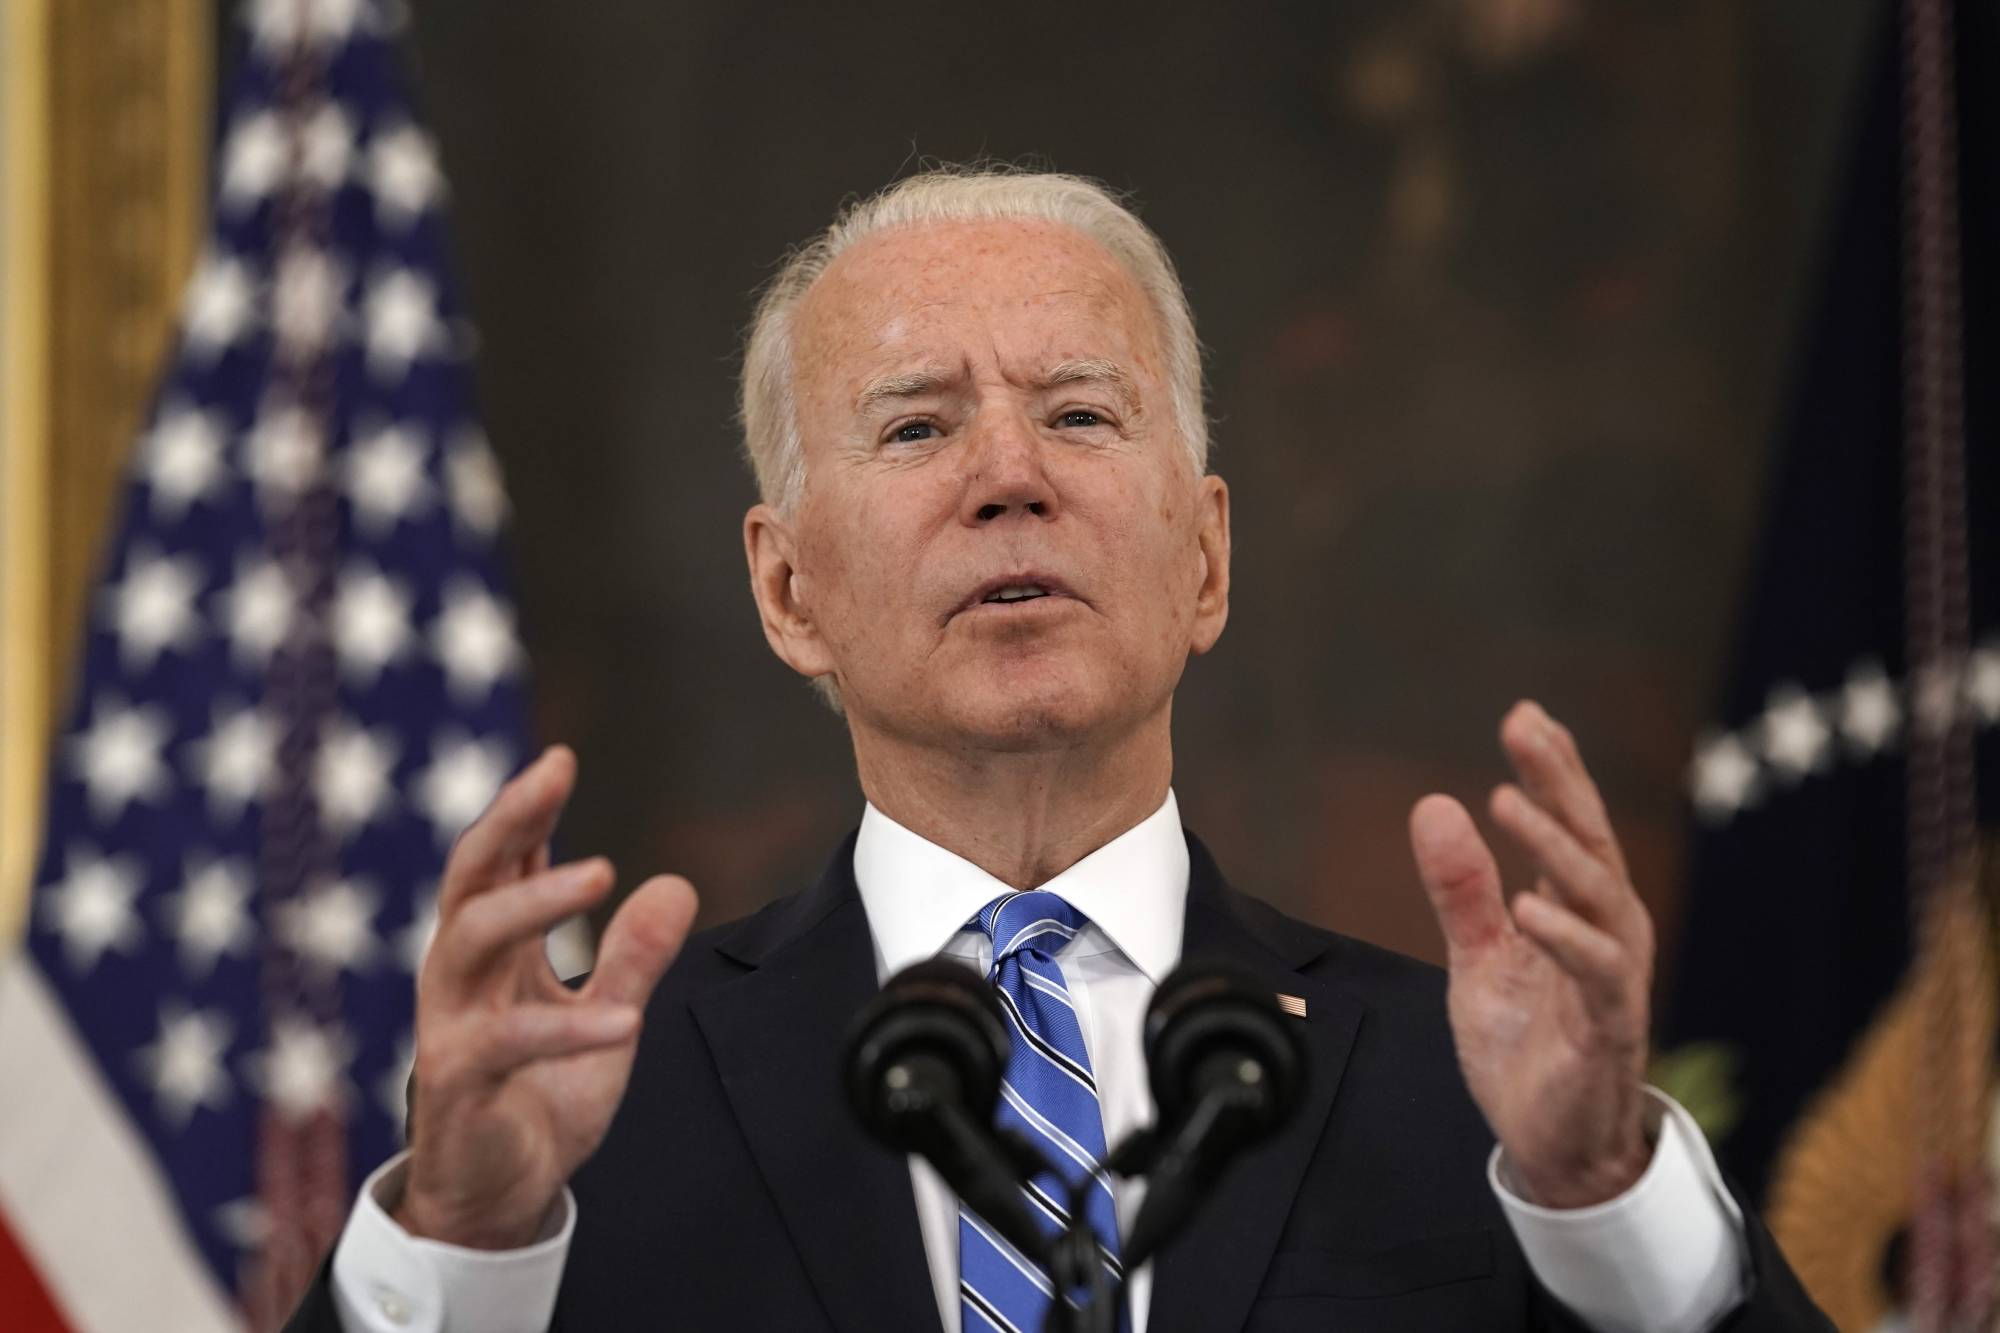 The administration of U.S. President Joe Biden has no immediate plans to levy economic sanctions on Chinese officials in response to the Microsoft Exchange hack that the U.S. blames on Beijing, sources have said.   BLOOMBERG